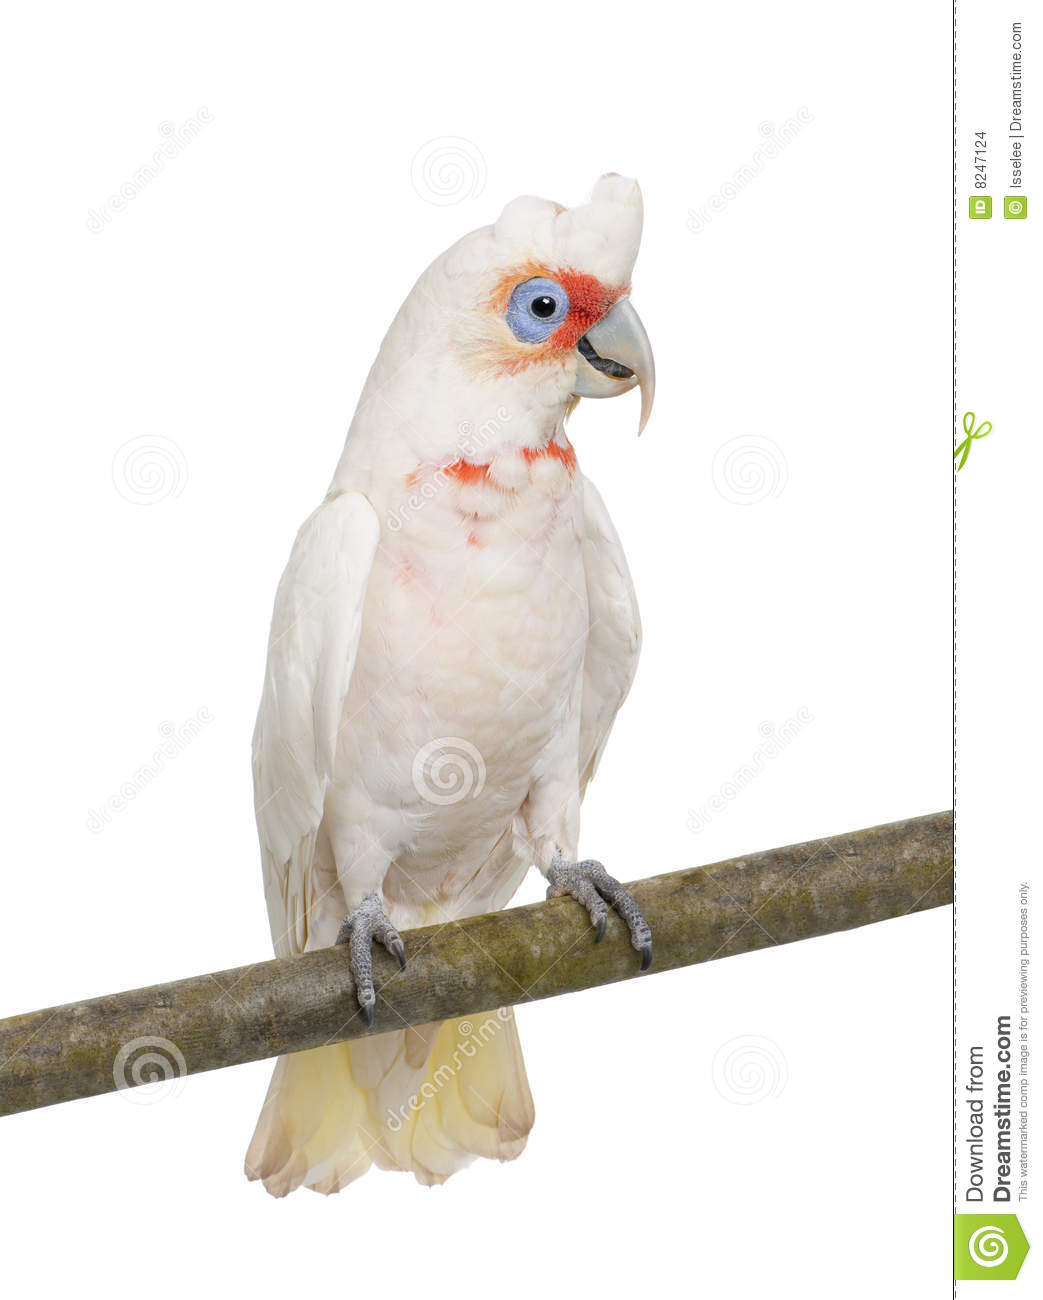 Long-billed Corella clipart #20, Download drawings